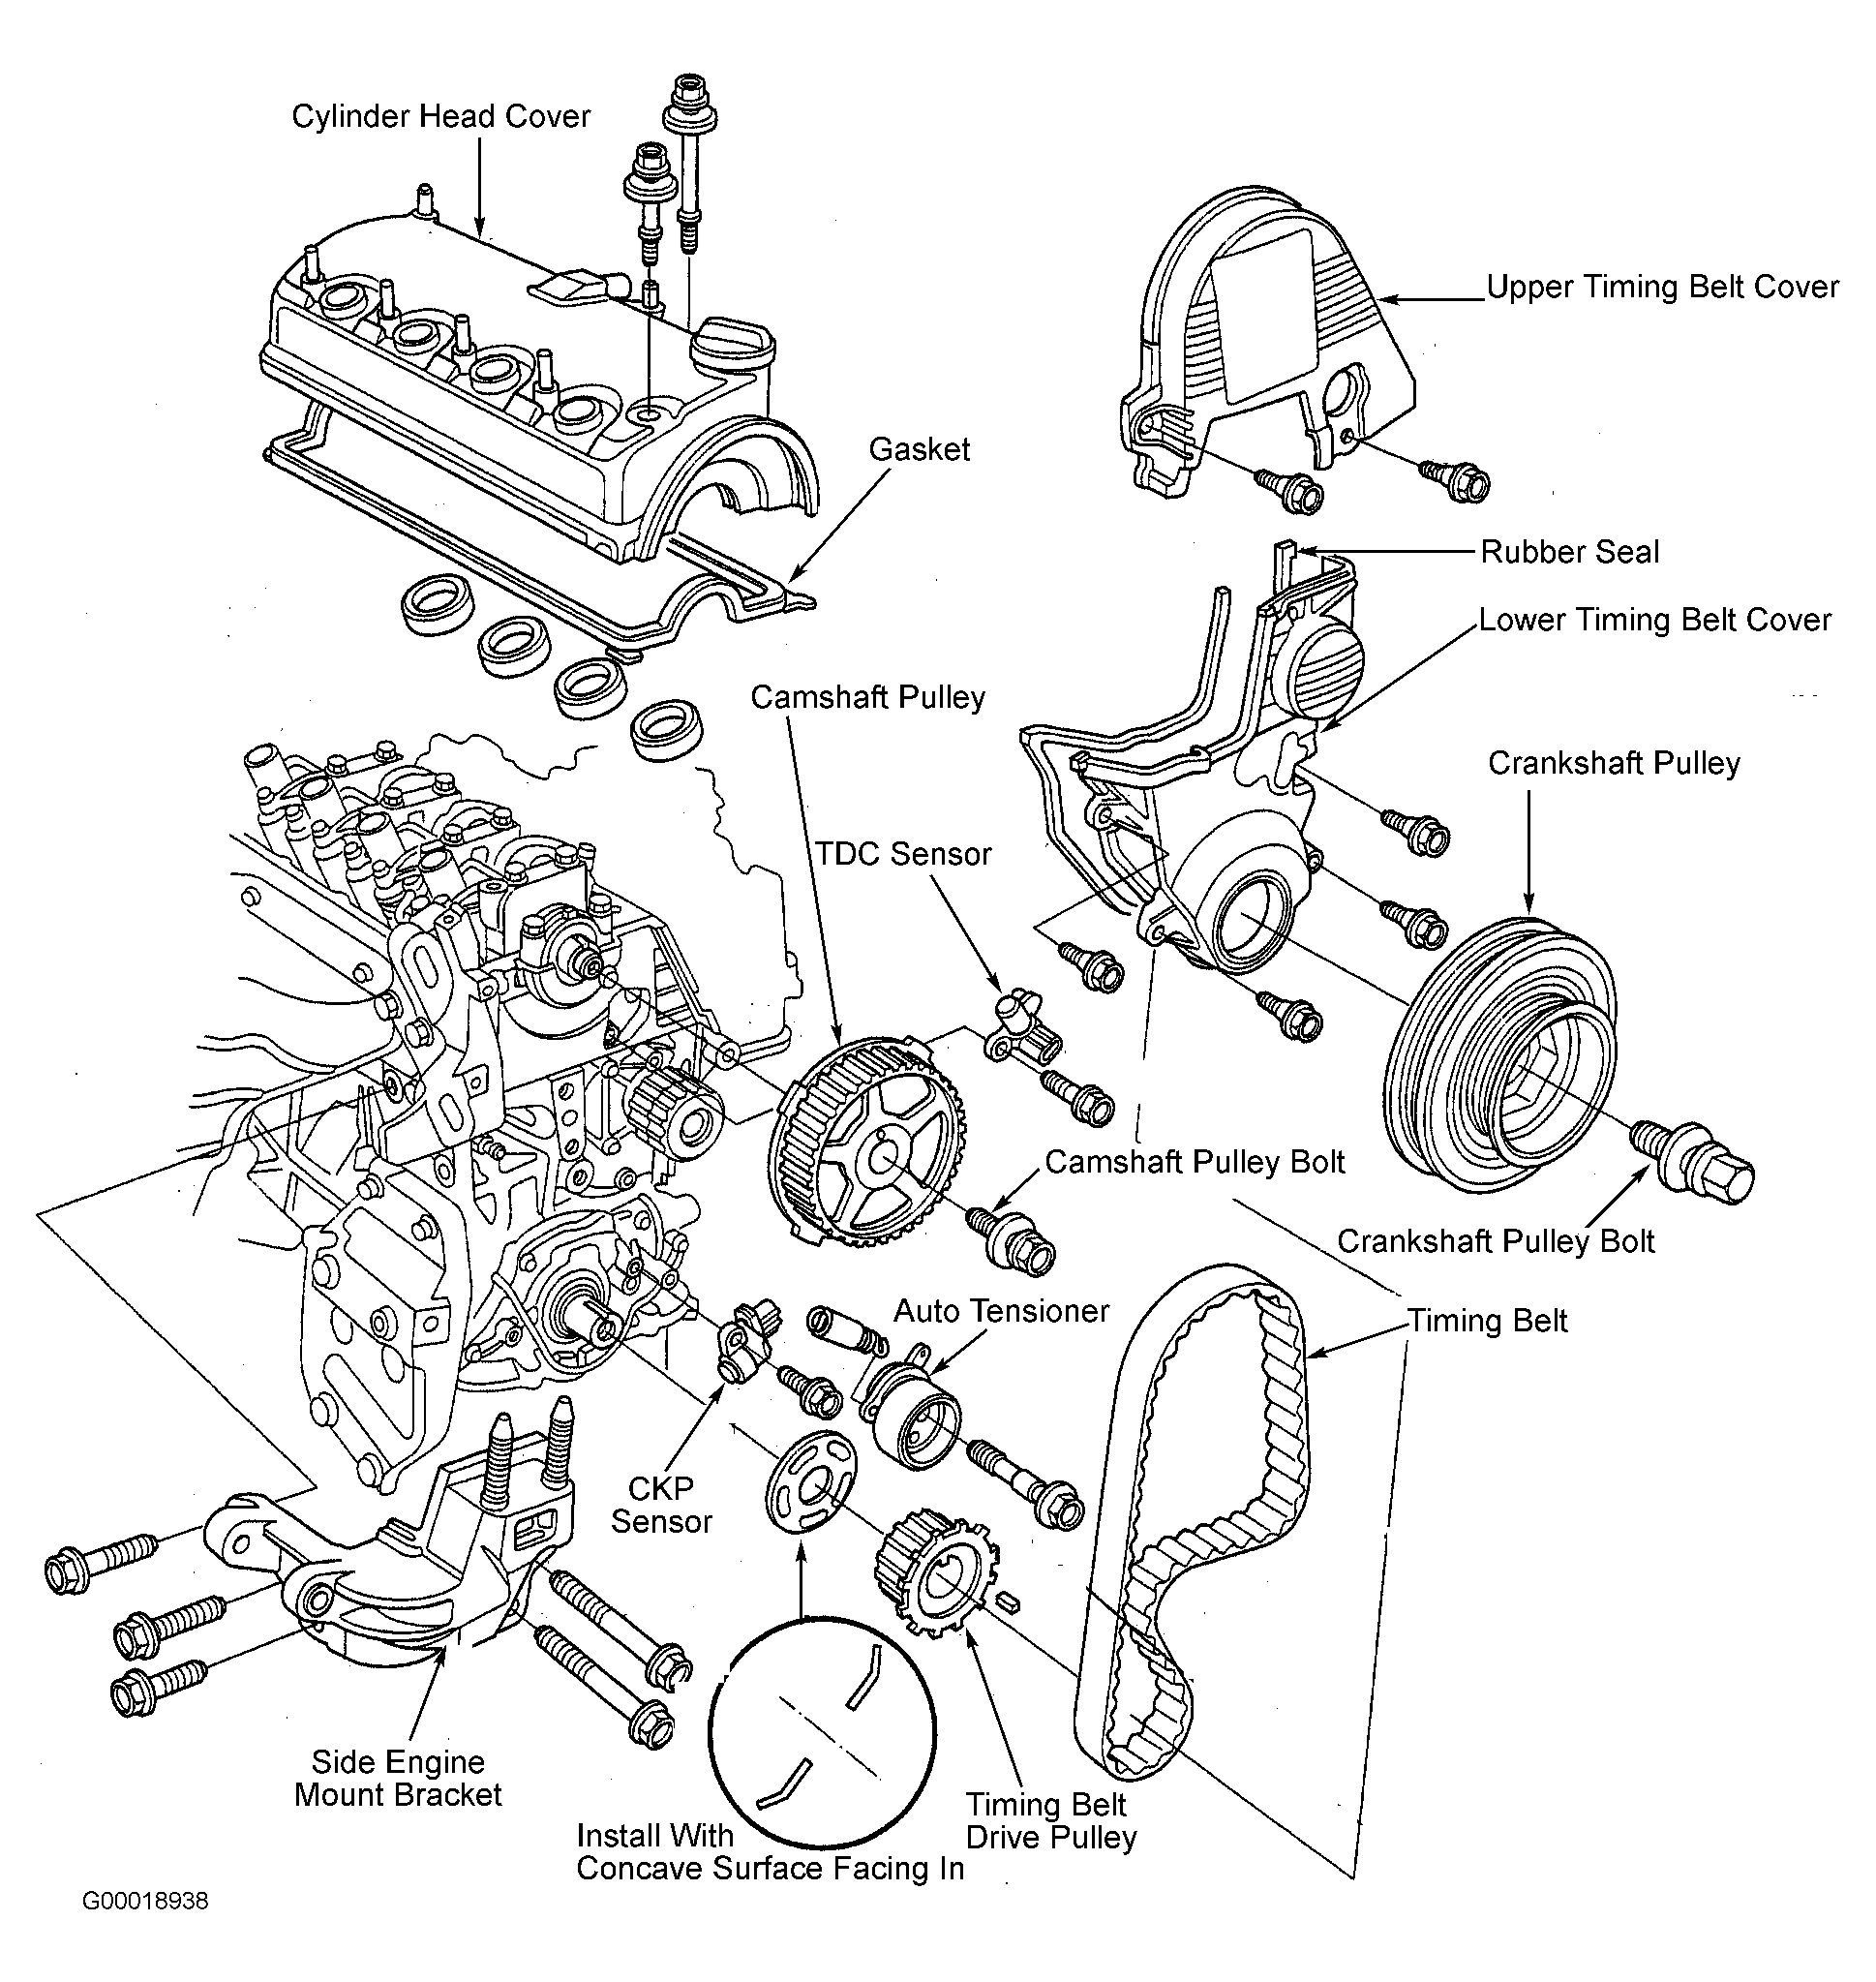 Honda Crv Engine Diagram Unlimited Wiring Diagram 2004 Honda Cr V Engine Diagram 2003 Honda Crv Engine Diagram 3 Honda Accord Honda Civic Ford Excursion